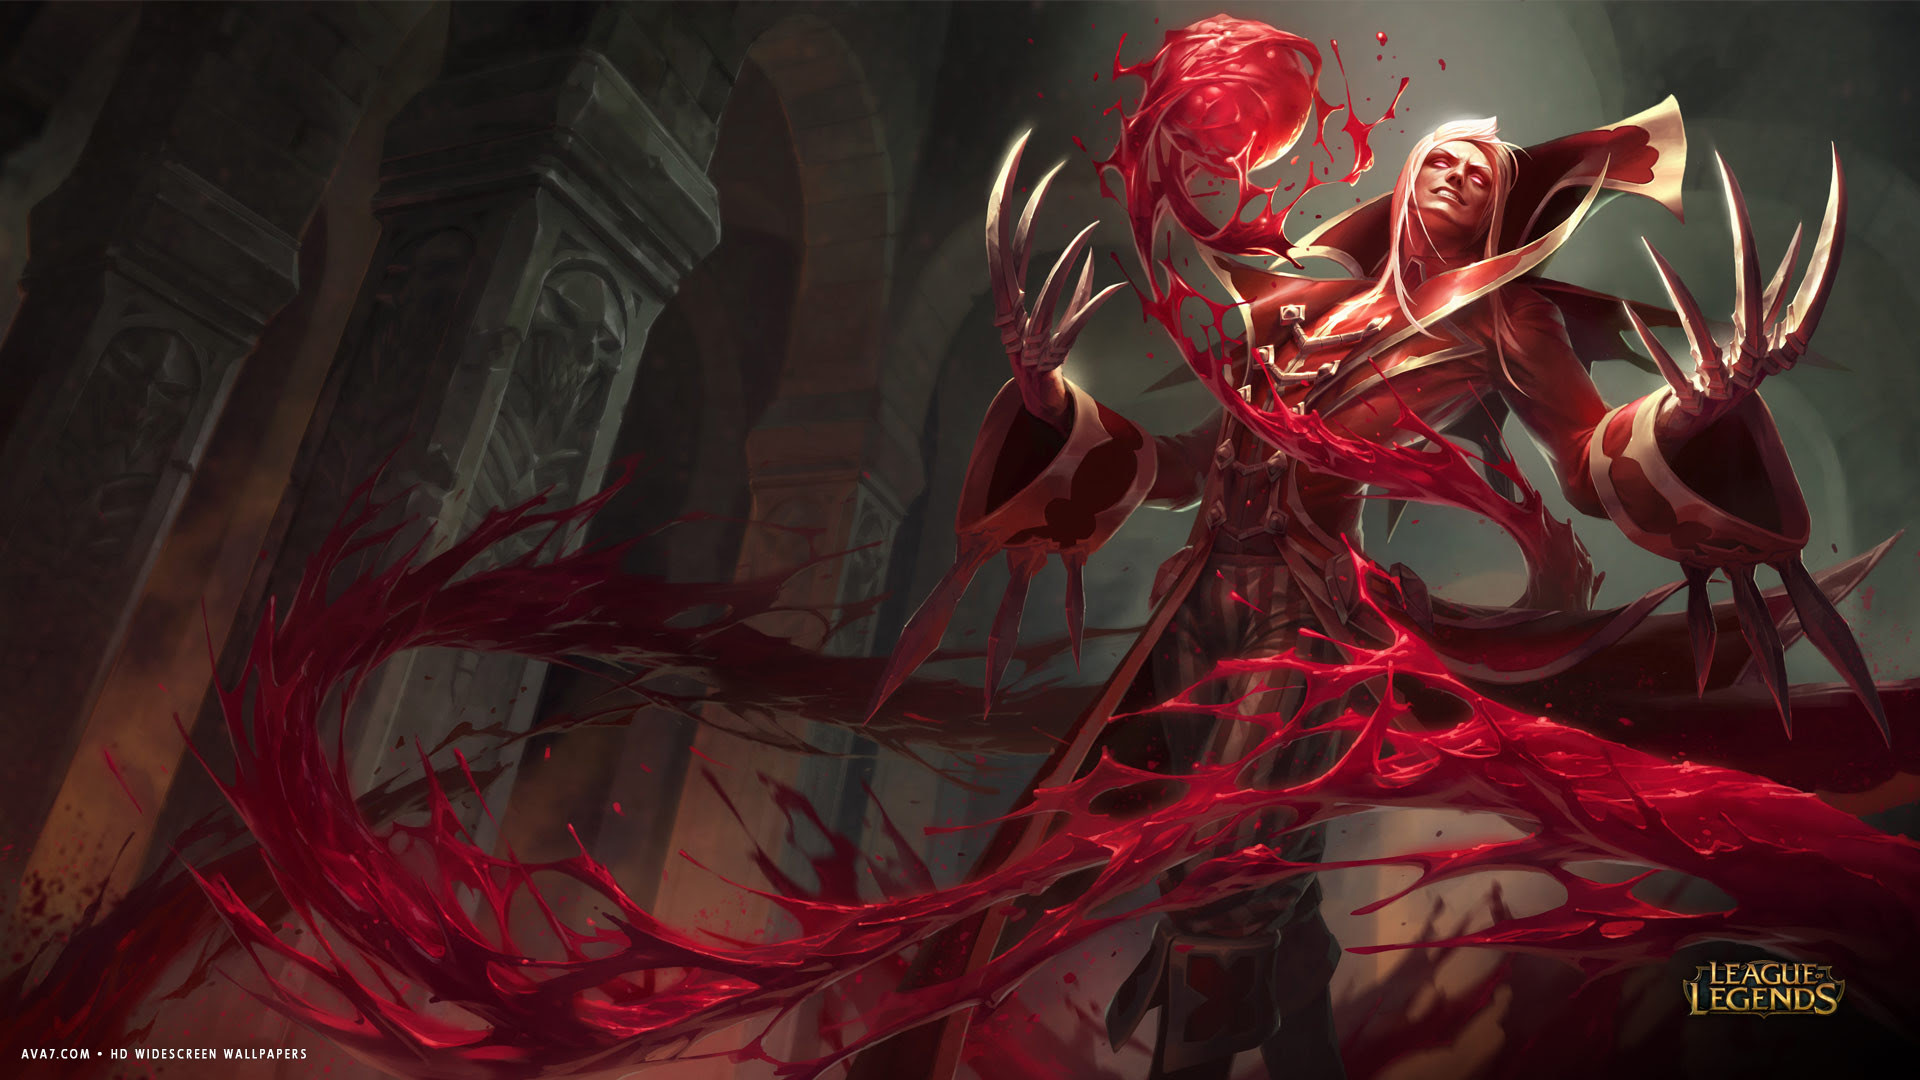 League Of Legends Game Lol Vladimir Evil Blood Red Hd Widescreen